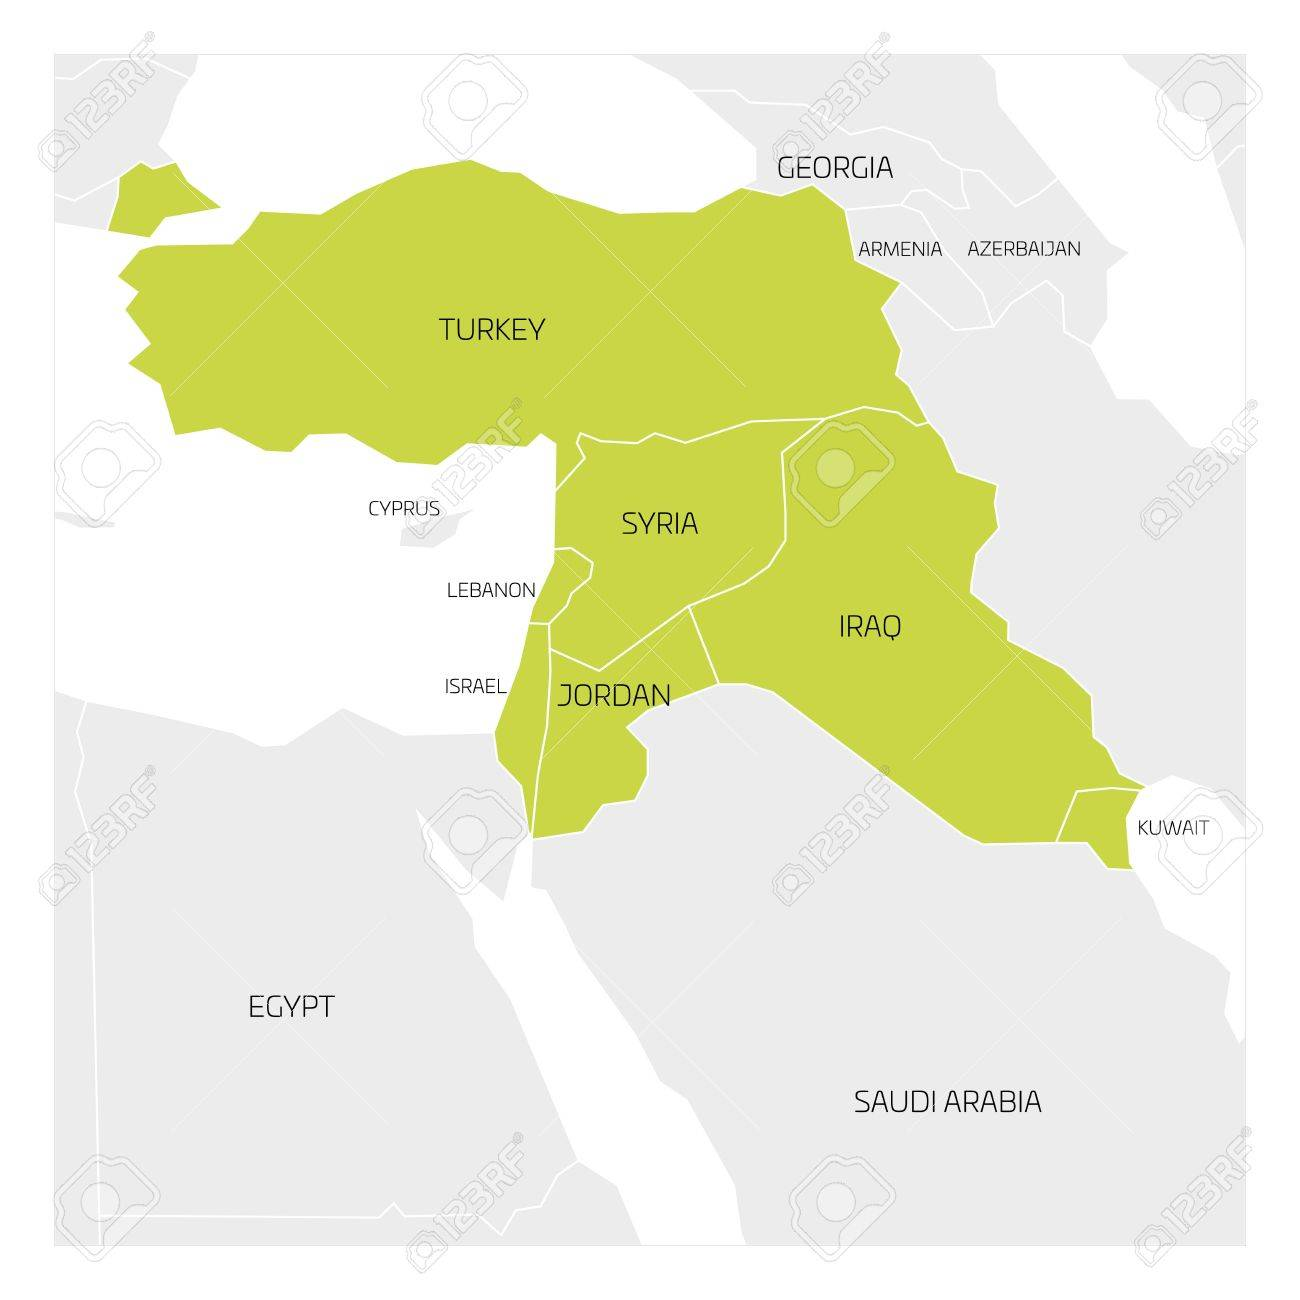 Map Of Middle East Or Near East Transcontinental Region With - Map of egypt israel jordan syria